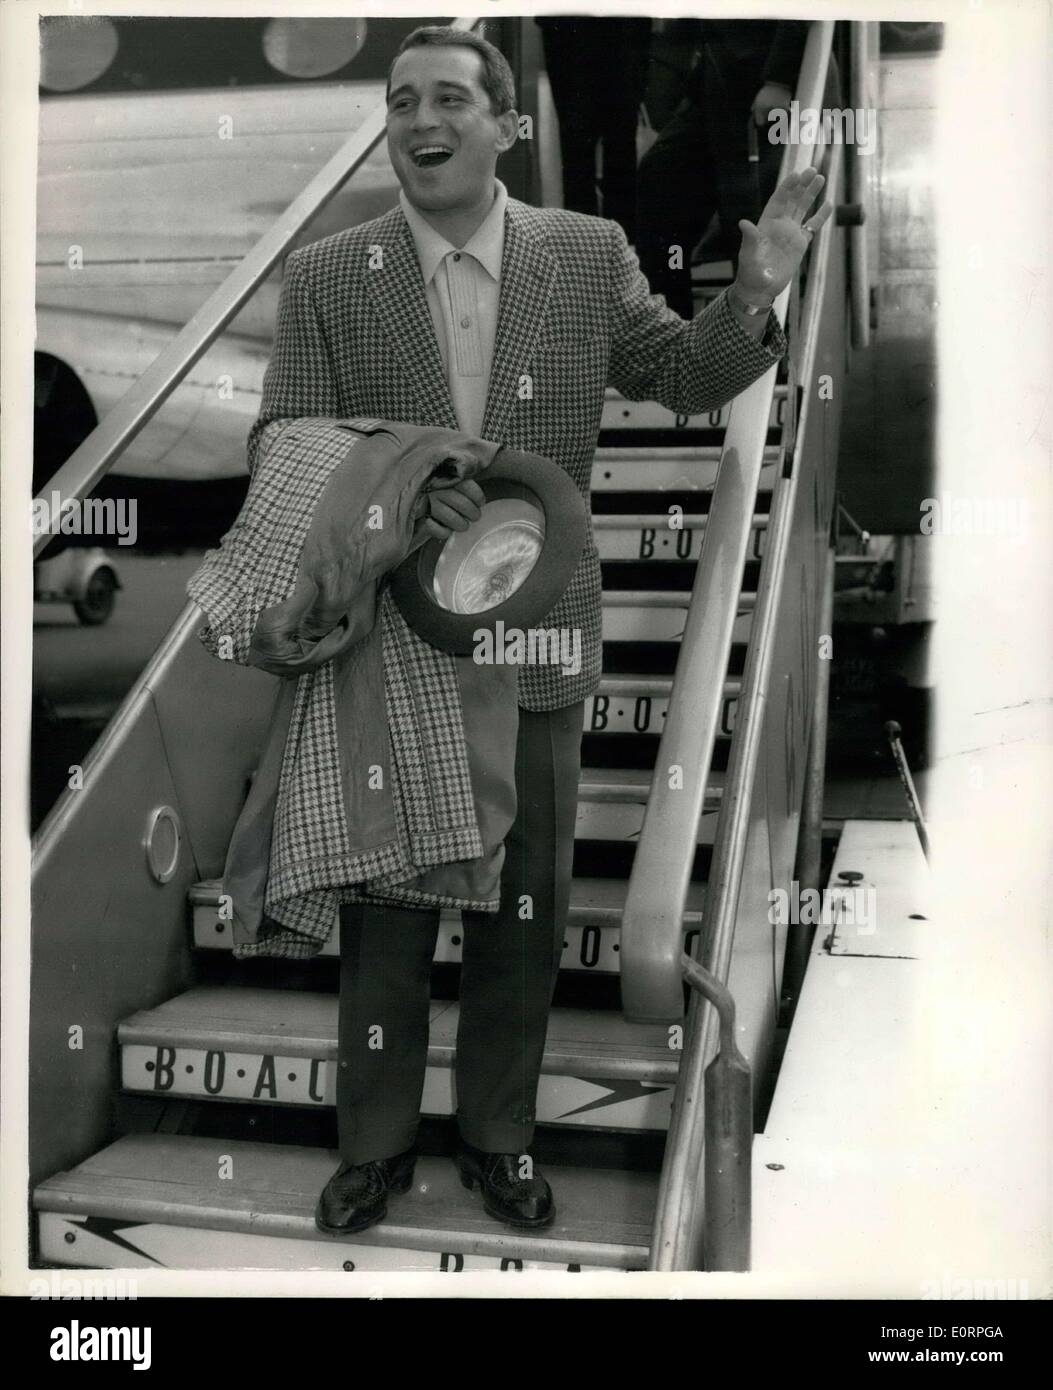 Apr. 16, 1960 - American Singing Star Perry Como Arrives in London. World's Highest Paid TV Entertainer. Perry Como, who is said to be the highest paid TV Entertainer in the World, arrived at London Airport this morning. He is to appear on TV while here. Keystone Photo Shows: Perry Como serenades the crowd, from the aircraft steps, on his arrival at London airport this morning. - Stock Image